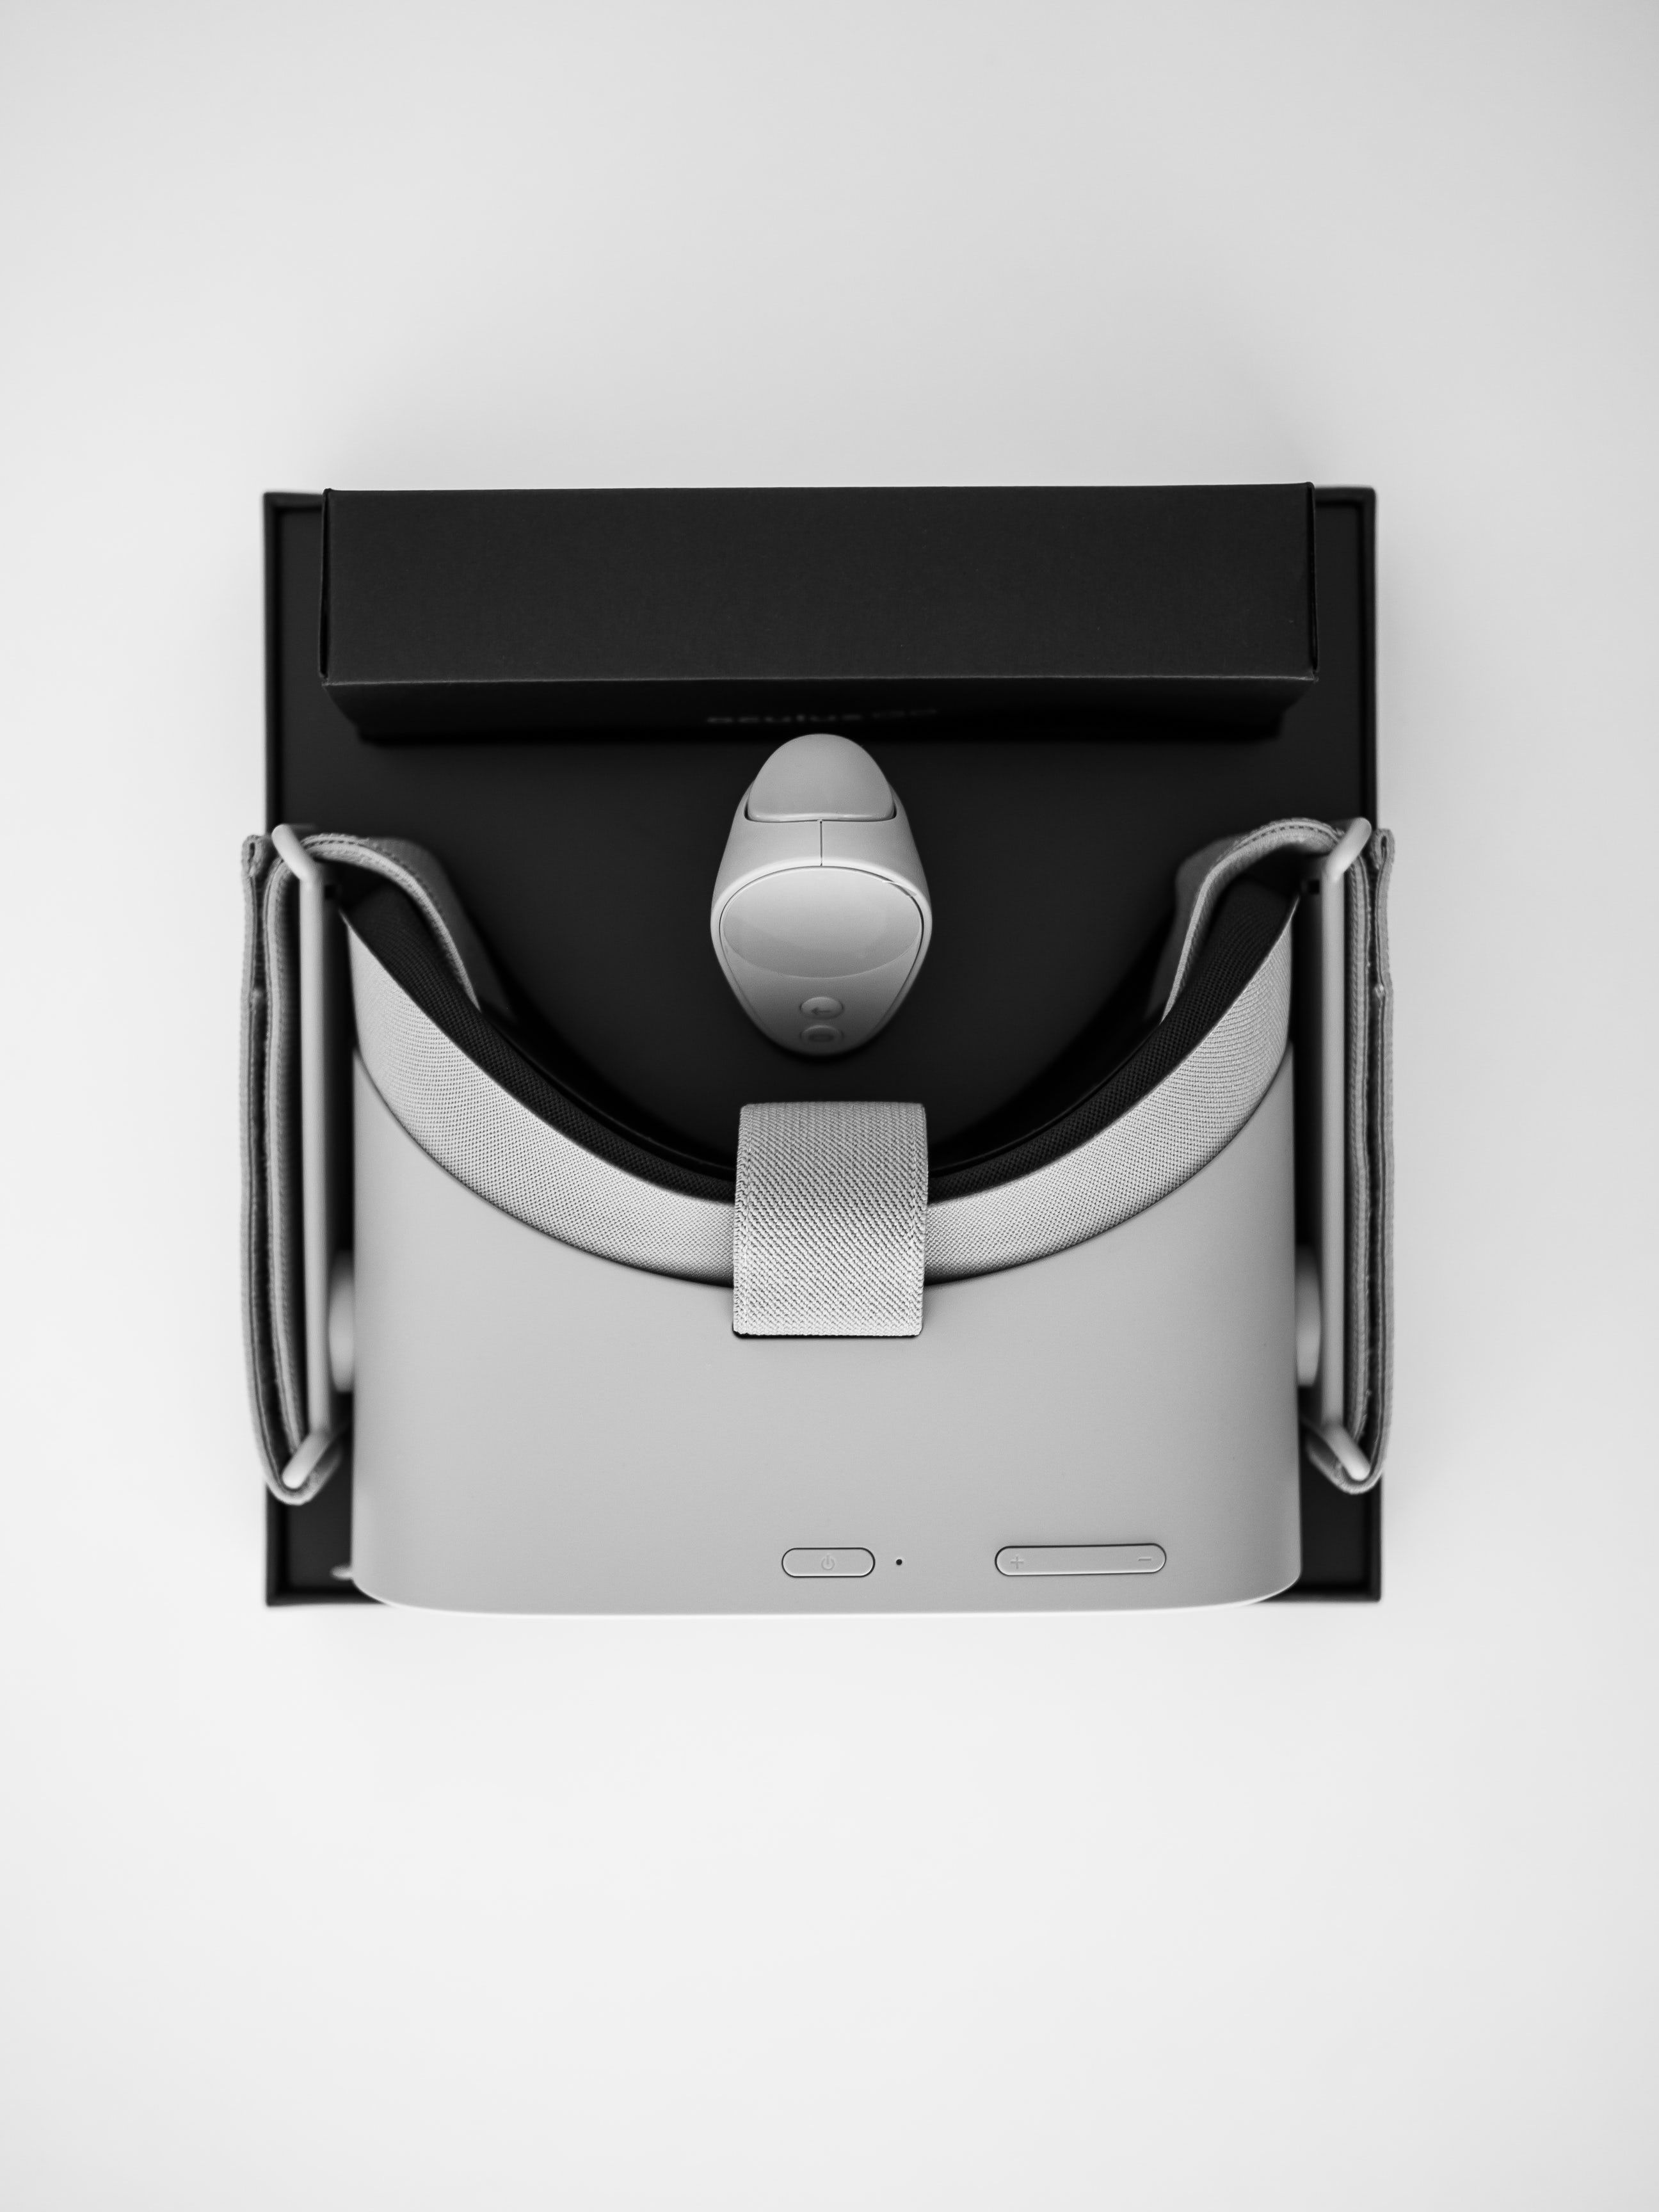 black and gray VR headset with box Vr headset, Iphone